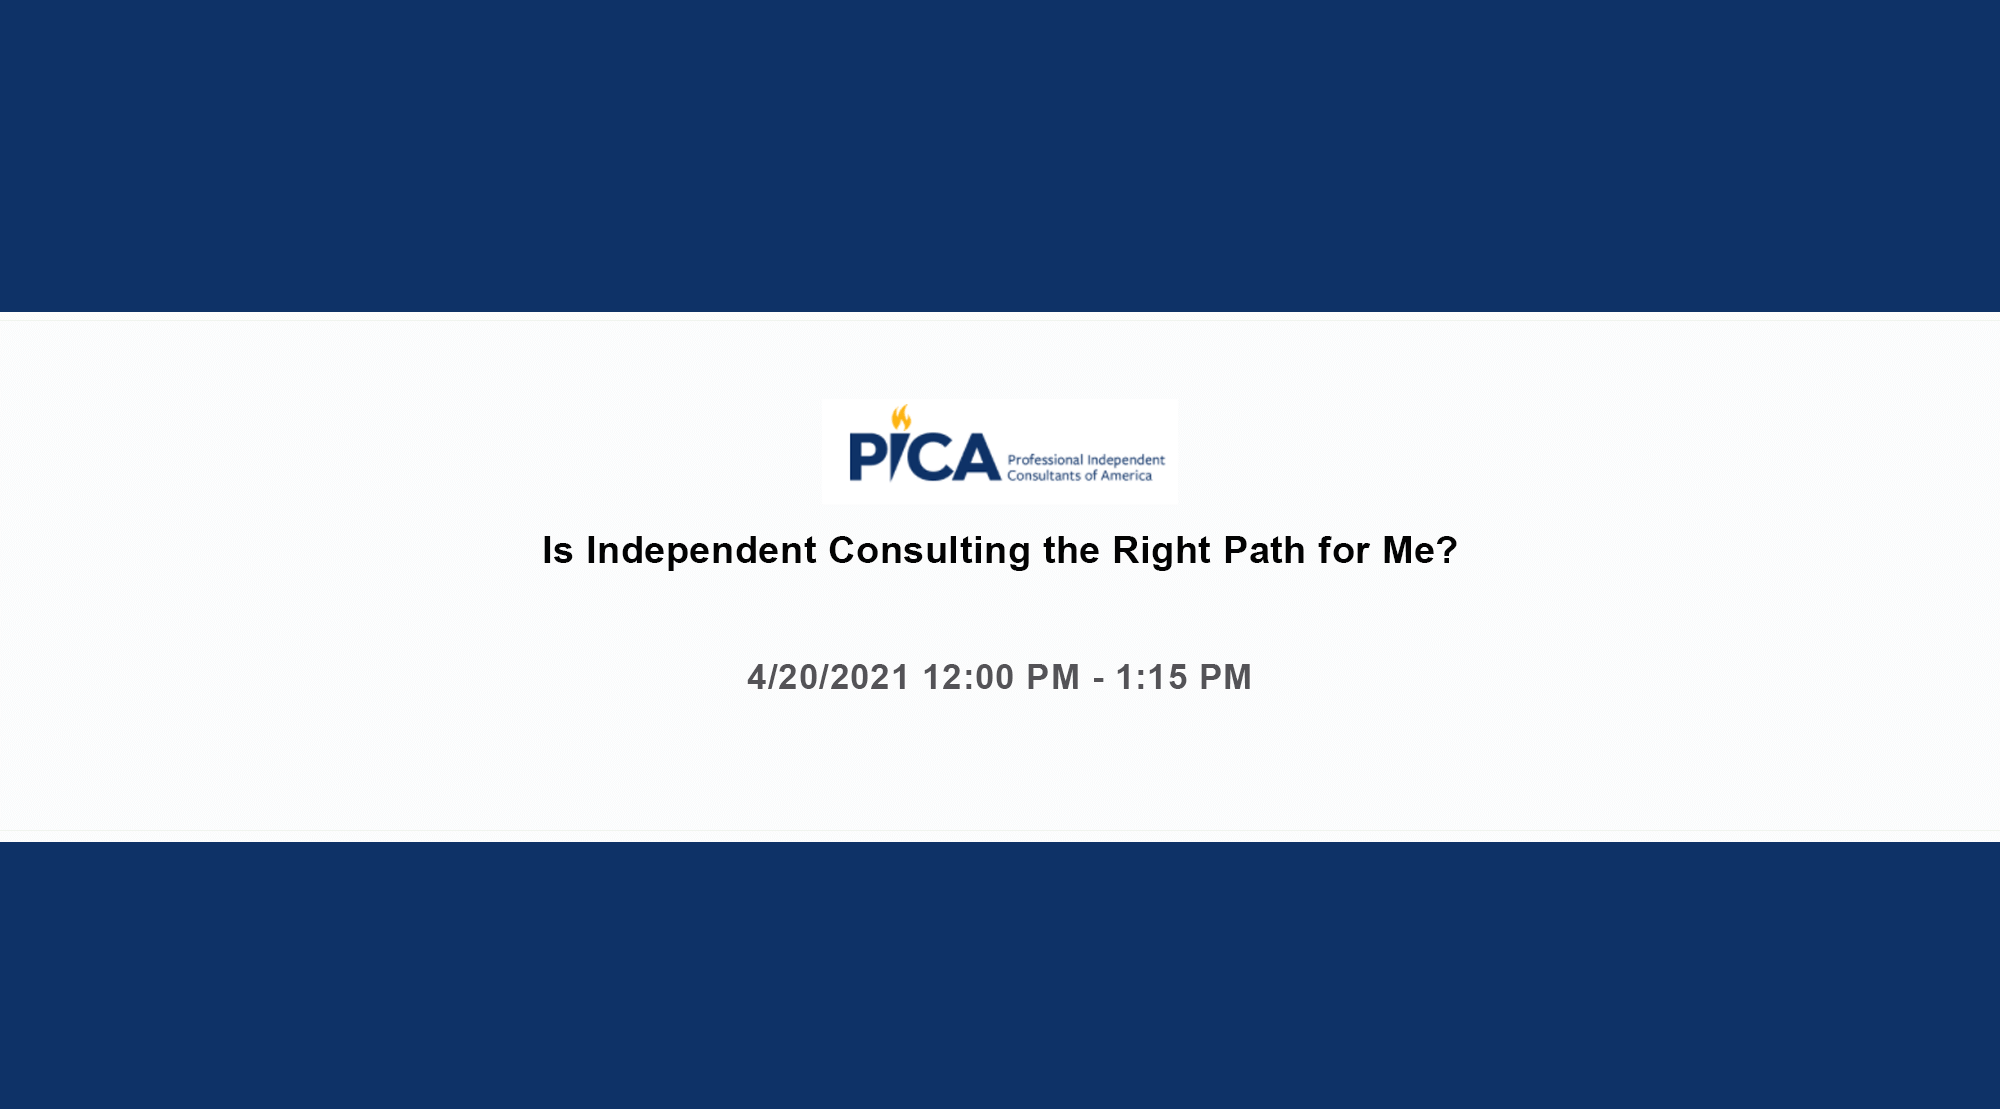 Is Independent Consulting the Right Path for Me?